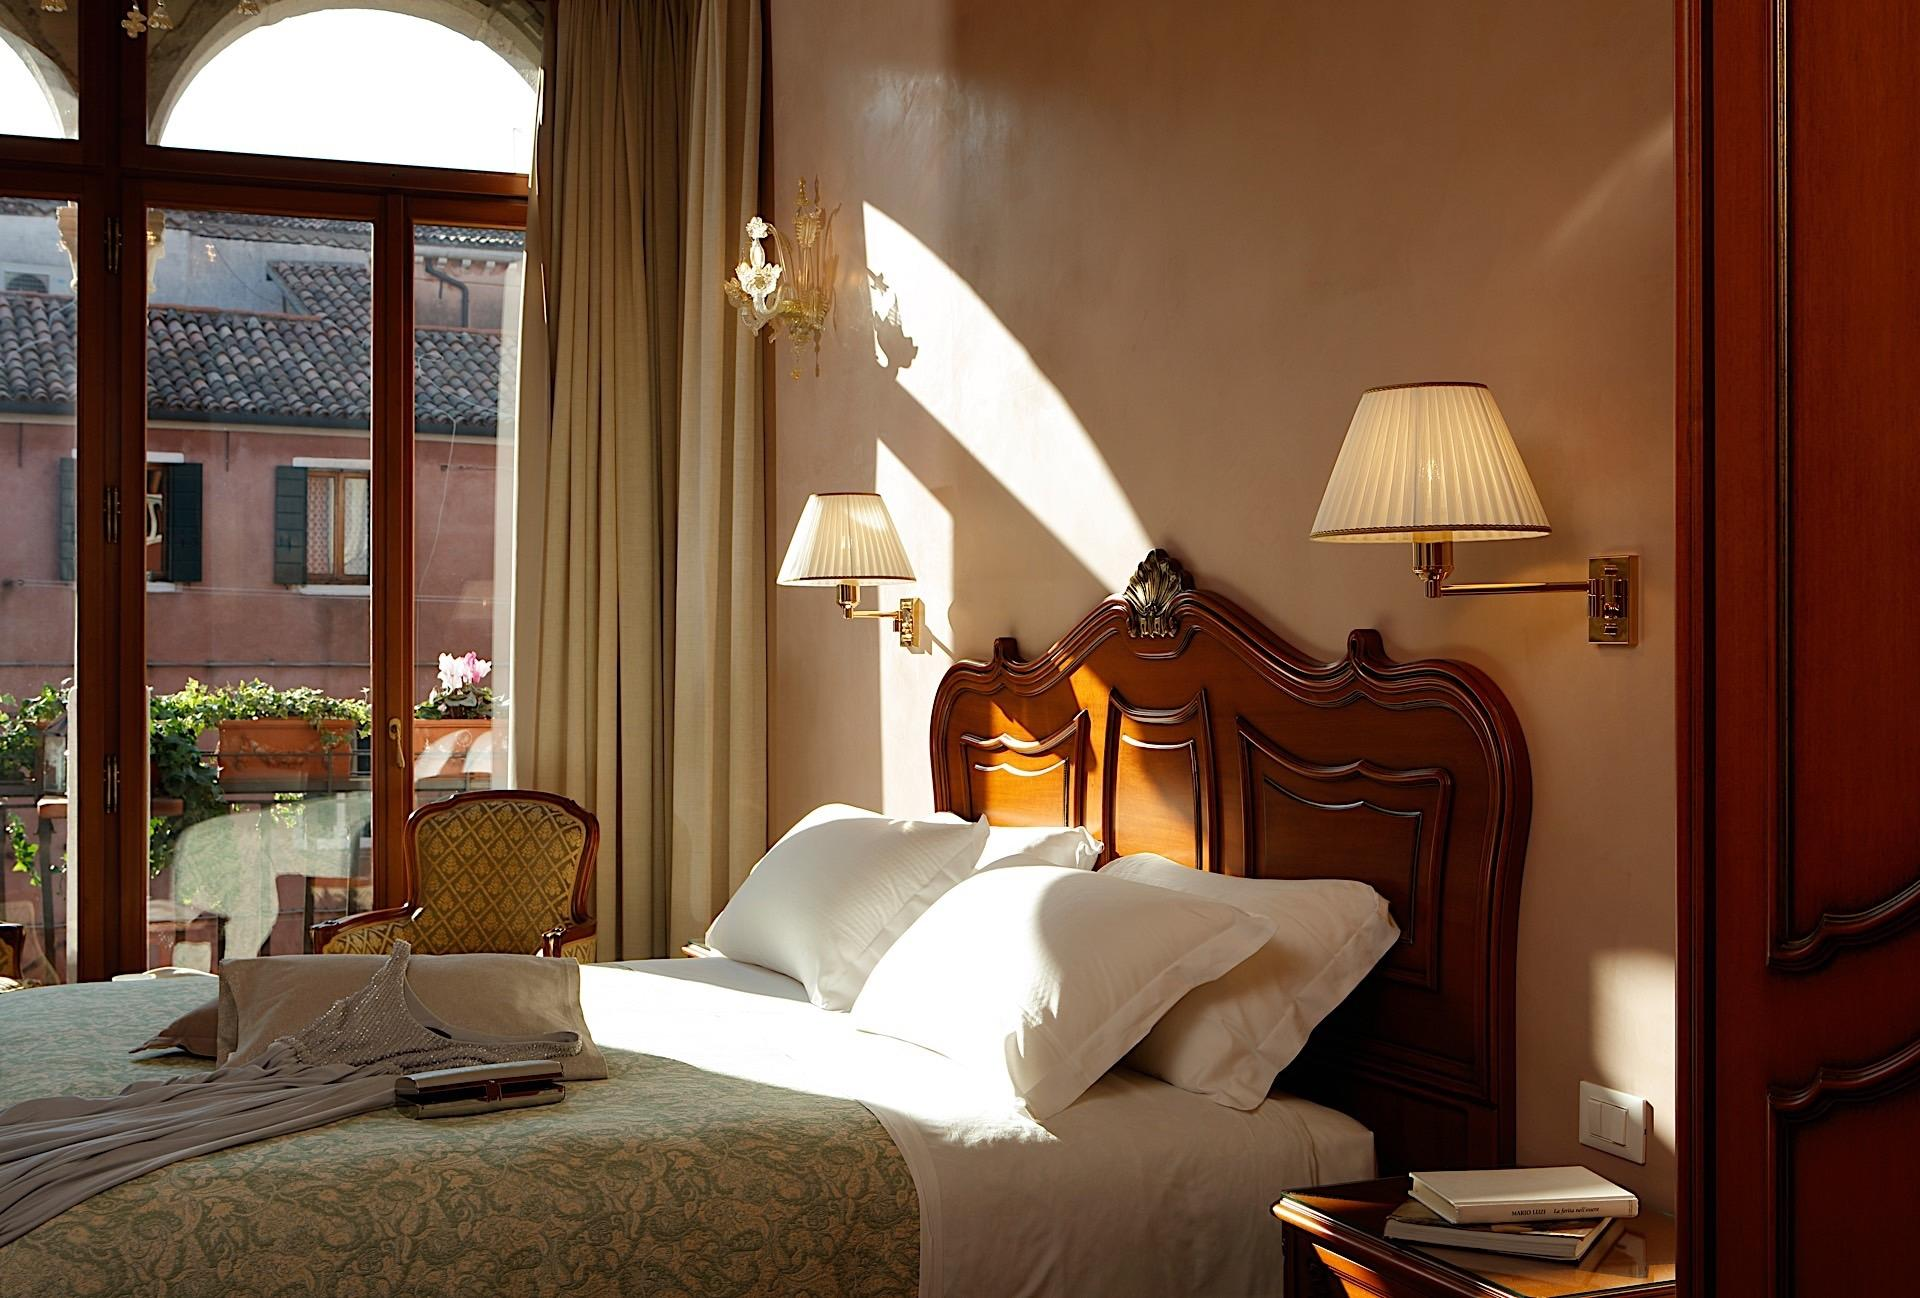 Accommodation at Hotel Bisanzio in Venice, Italy